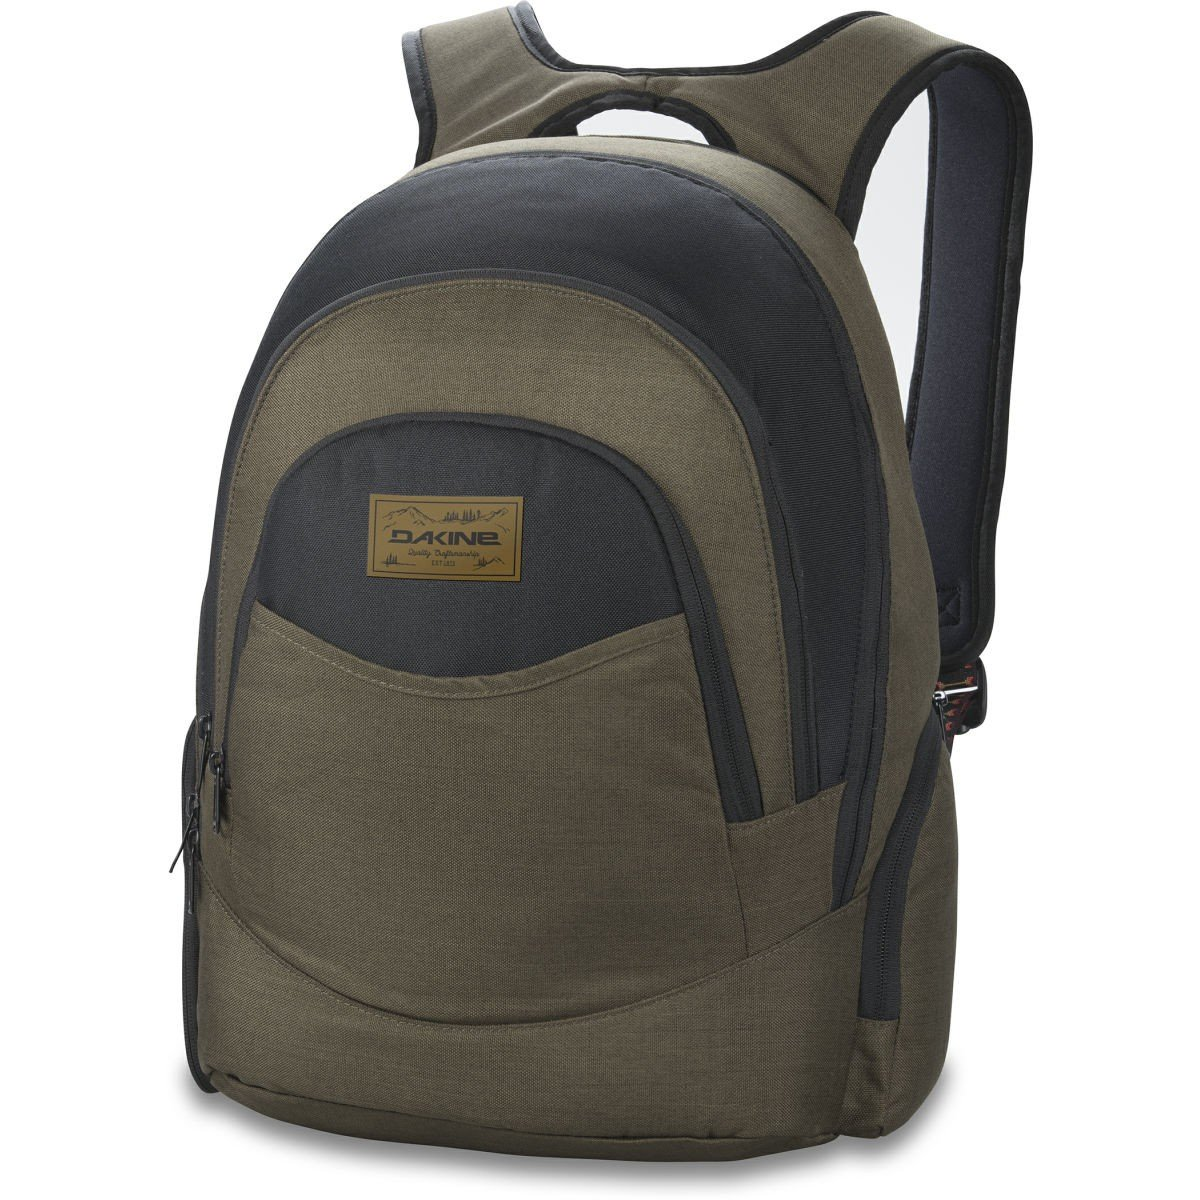 Dakine Cooler Backpack xushbjJM